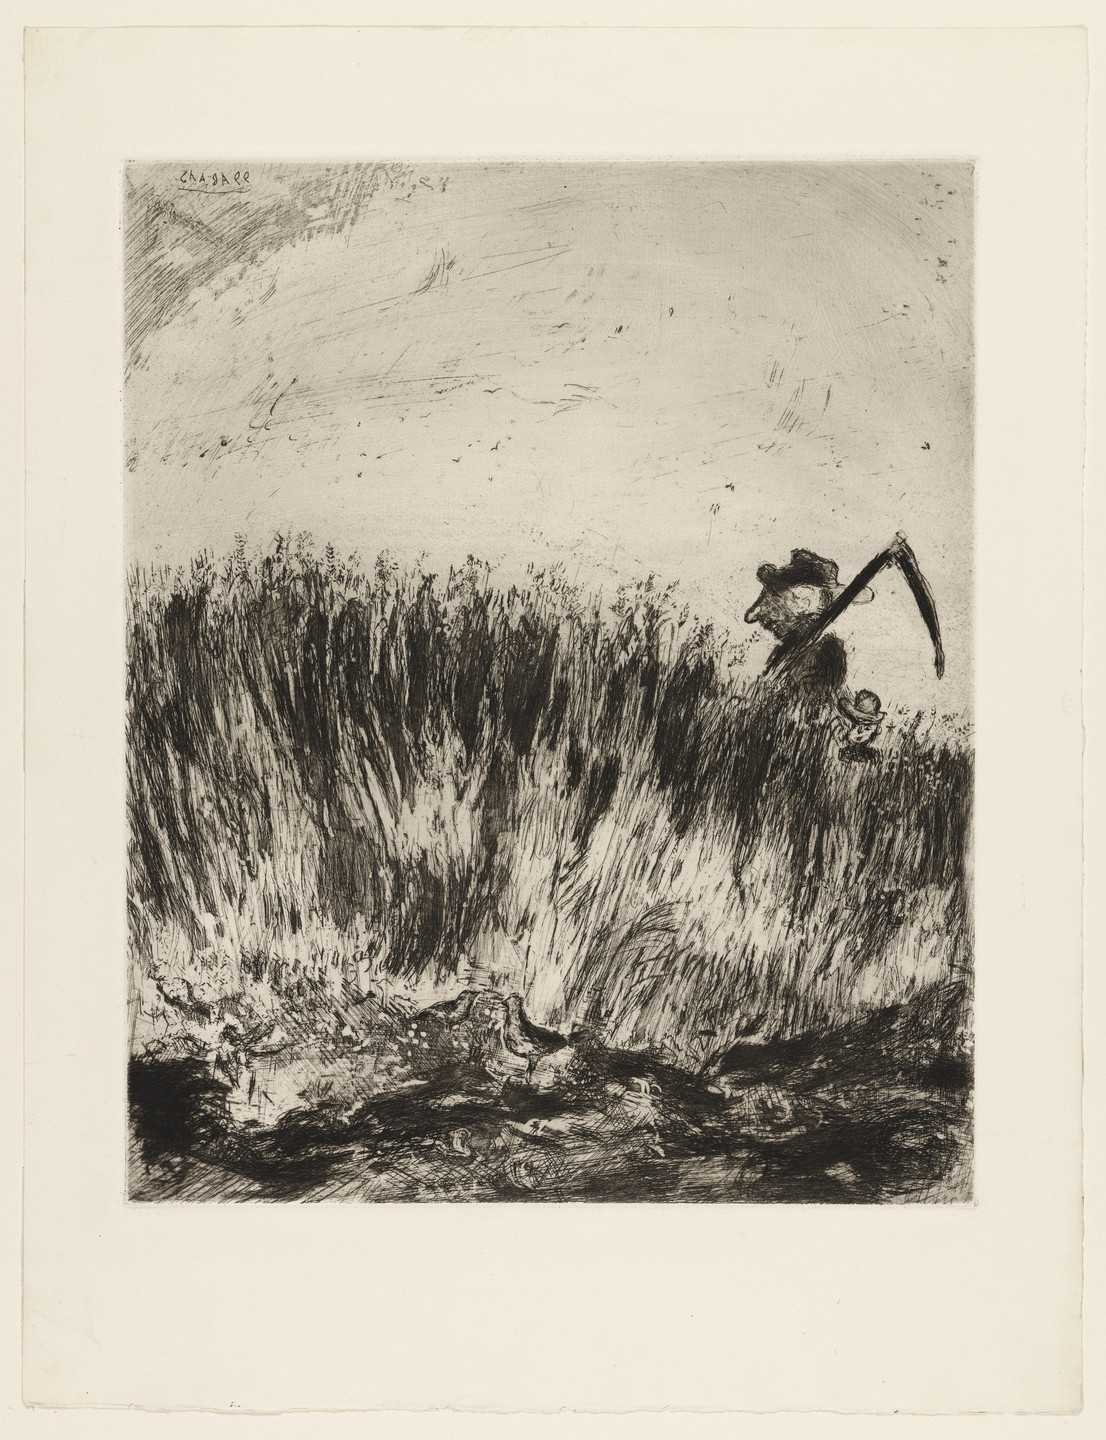 Marc Chagall. The Lark and the Farmer. 1927